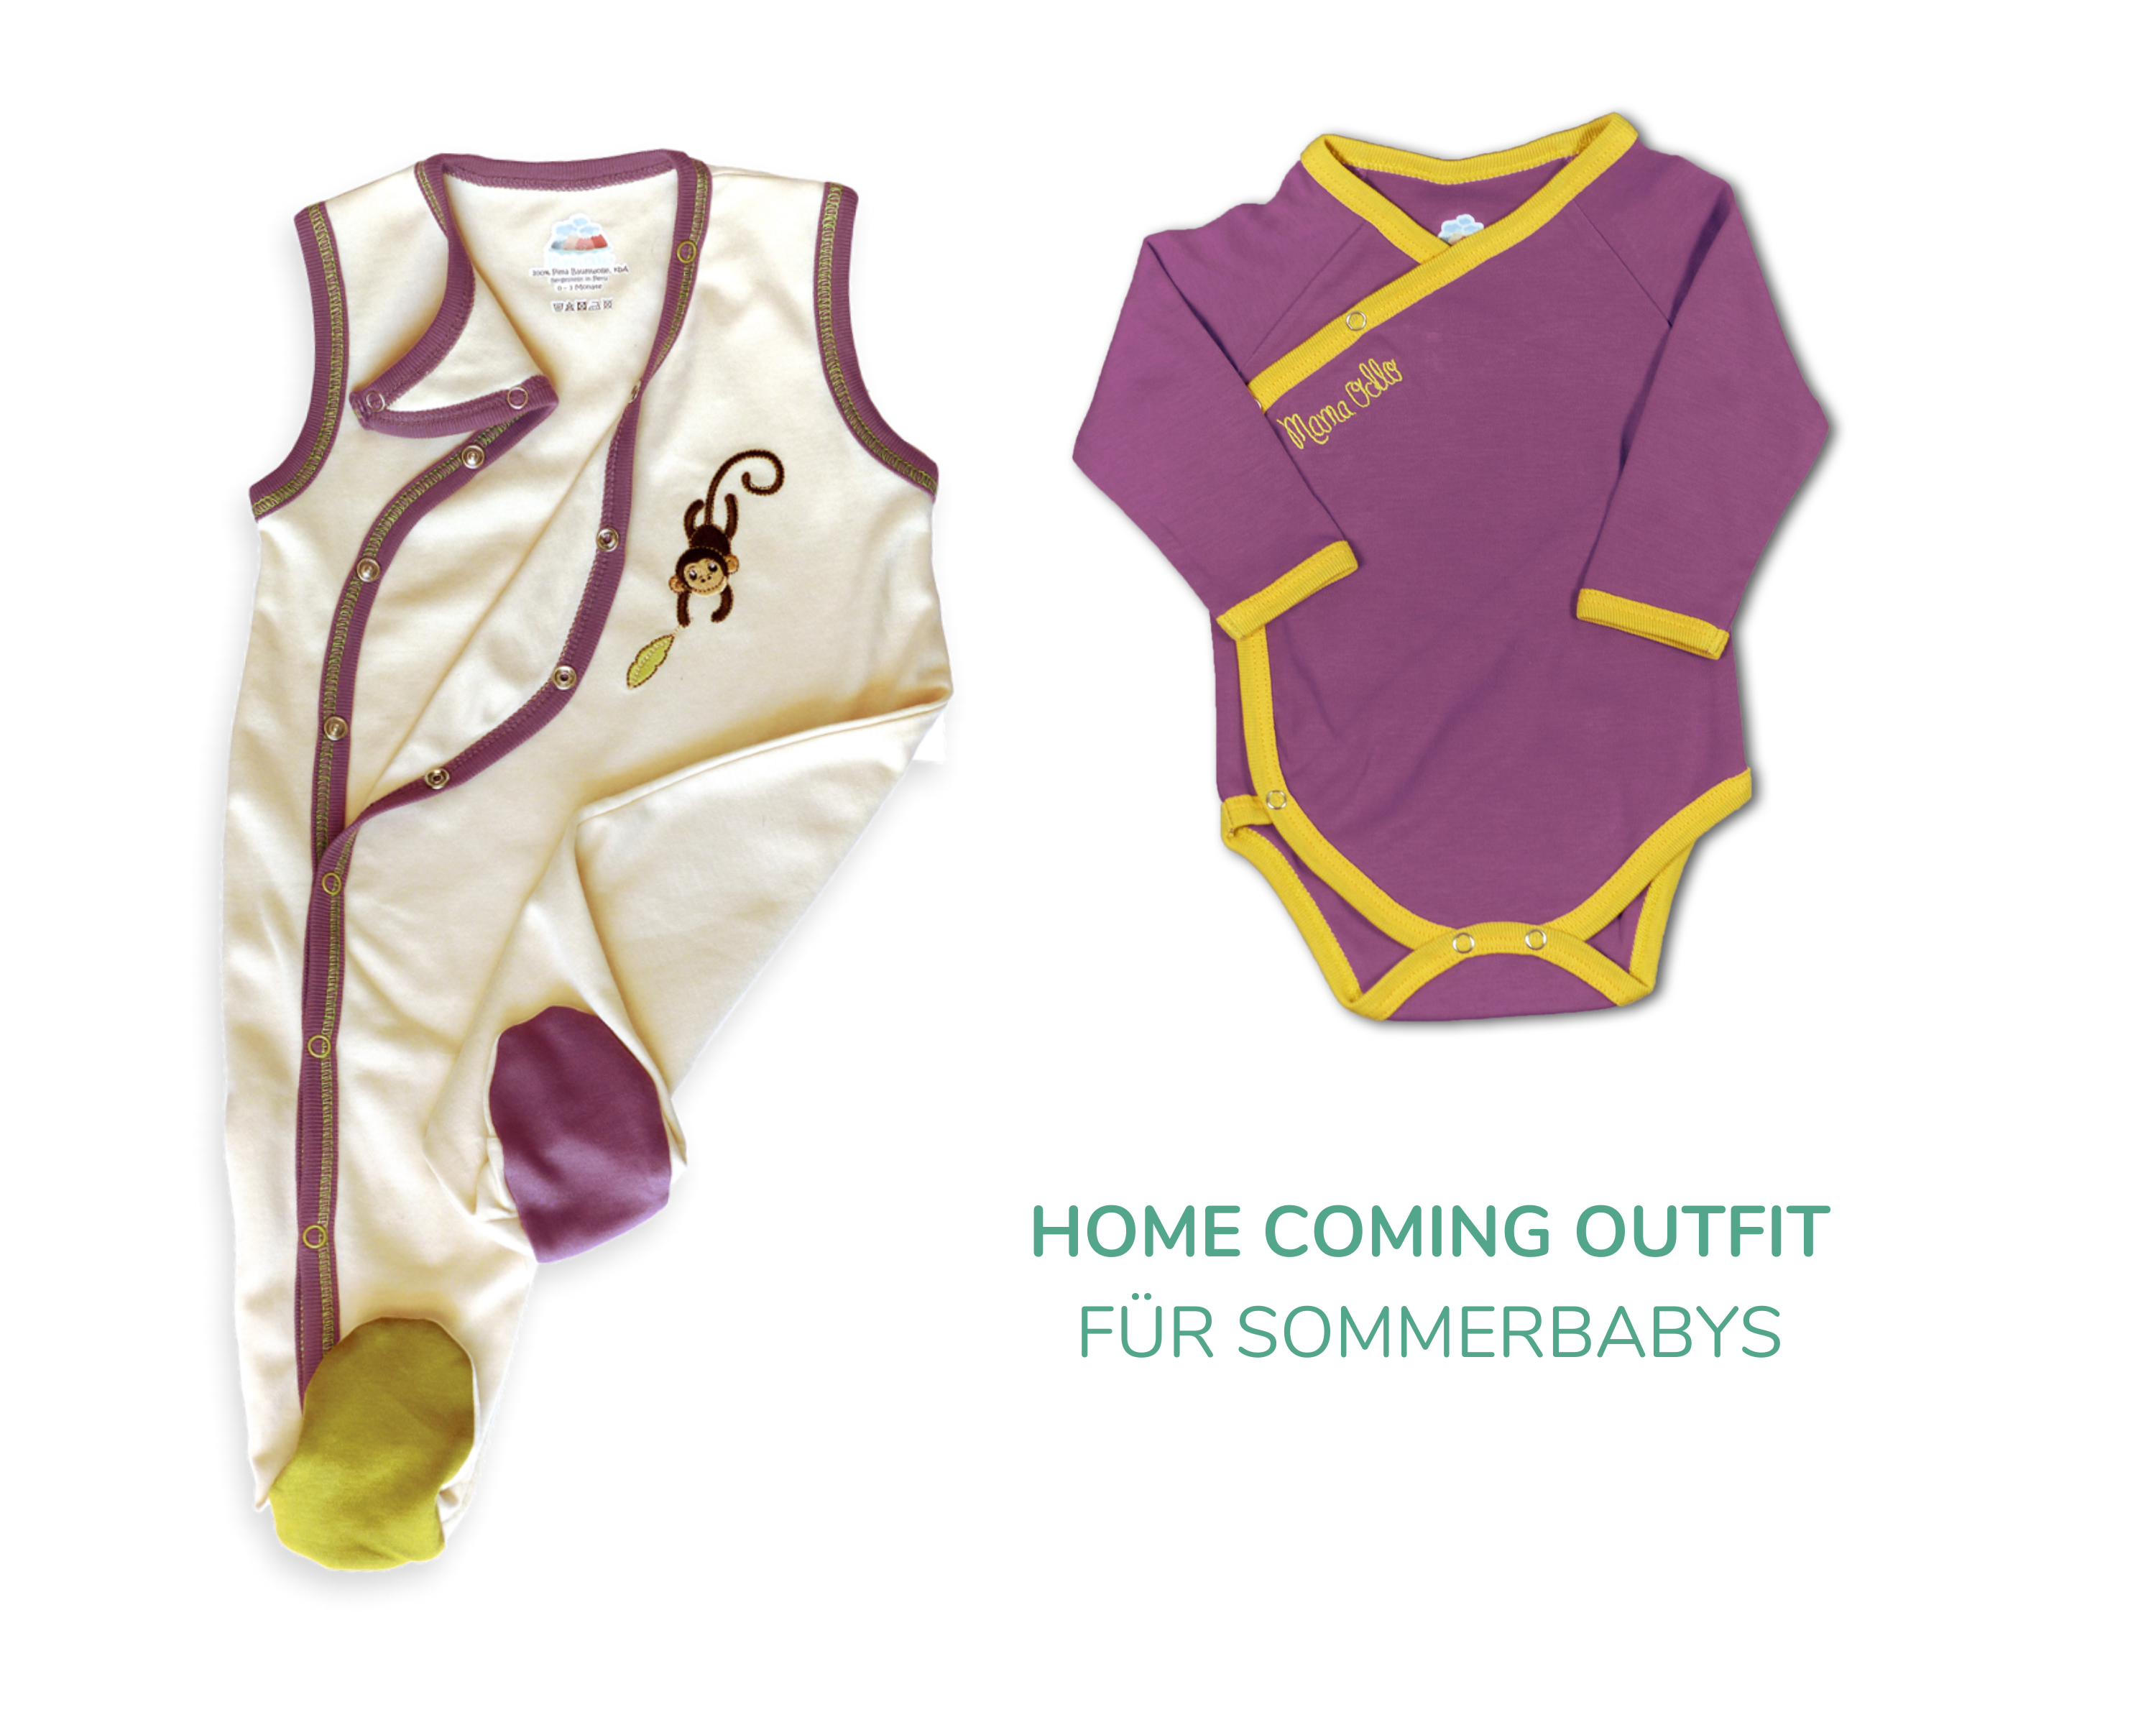 Home Coming Outfit für neugeborene Sommerbabys